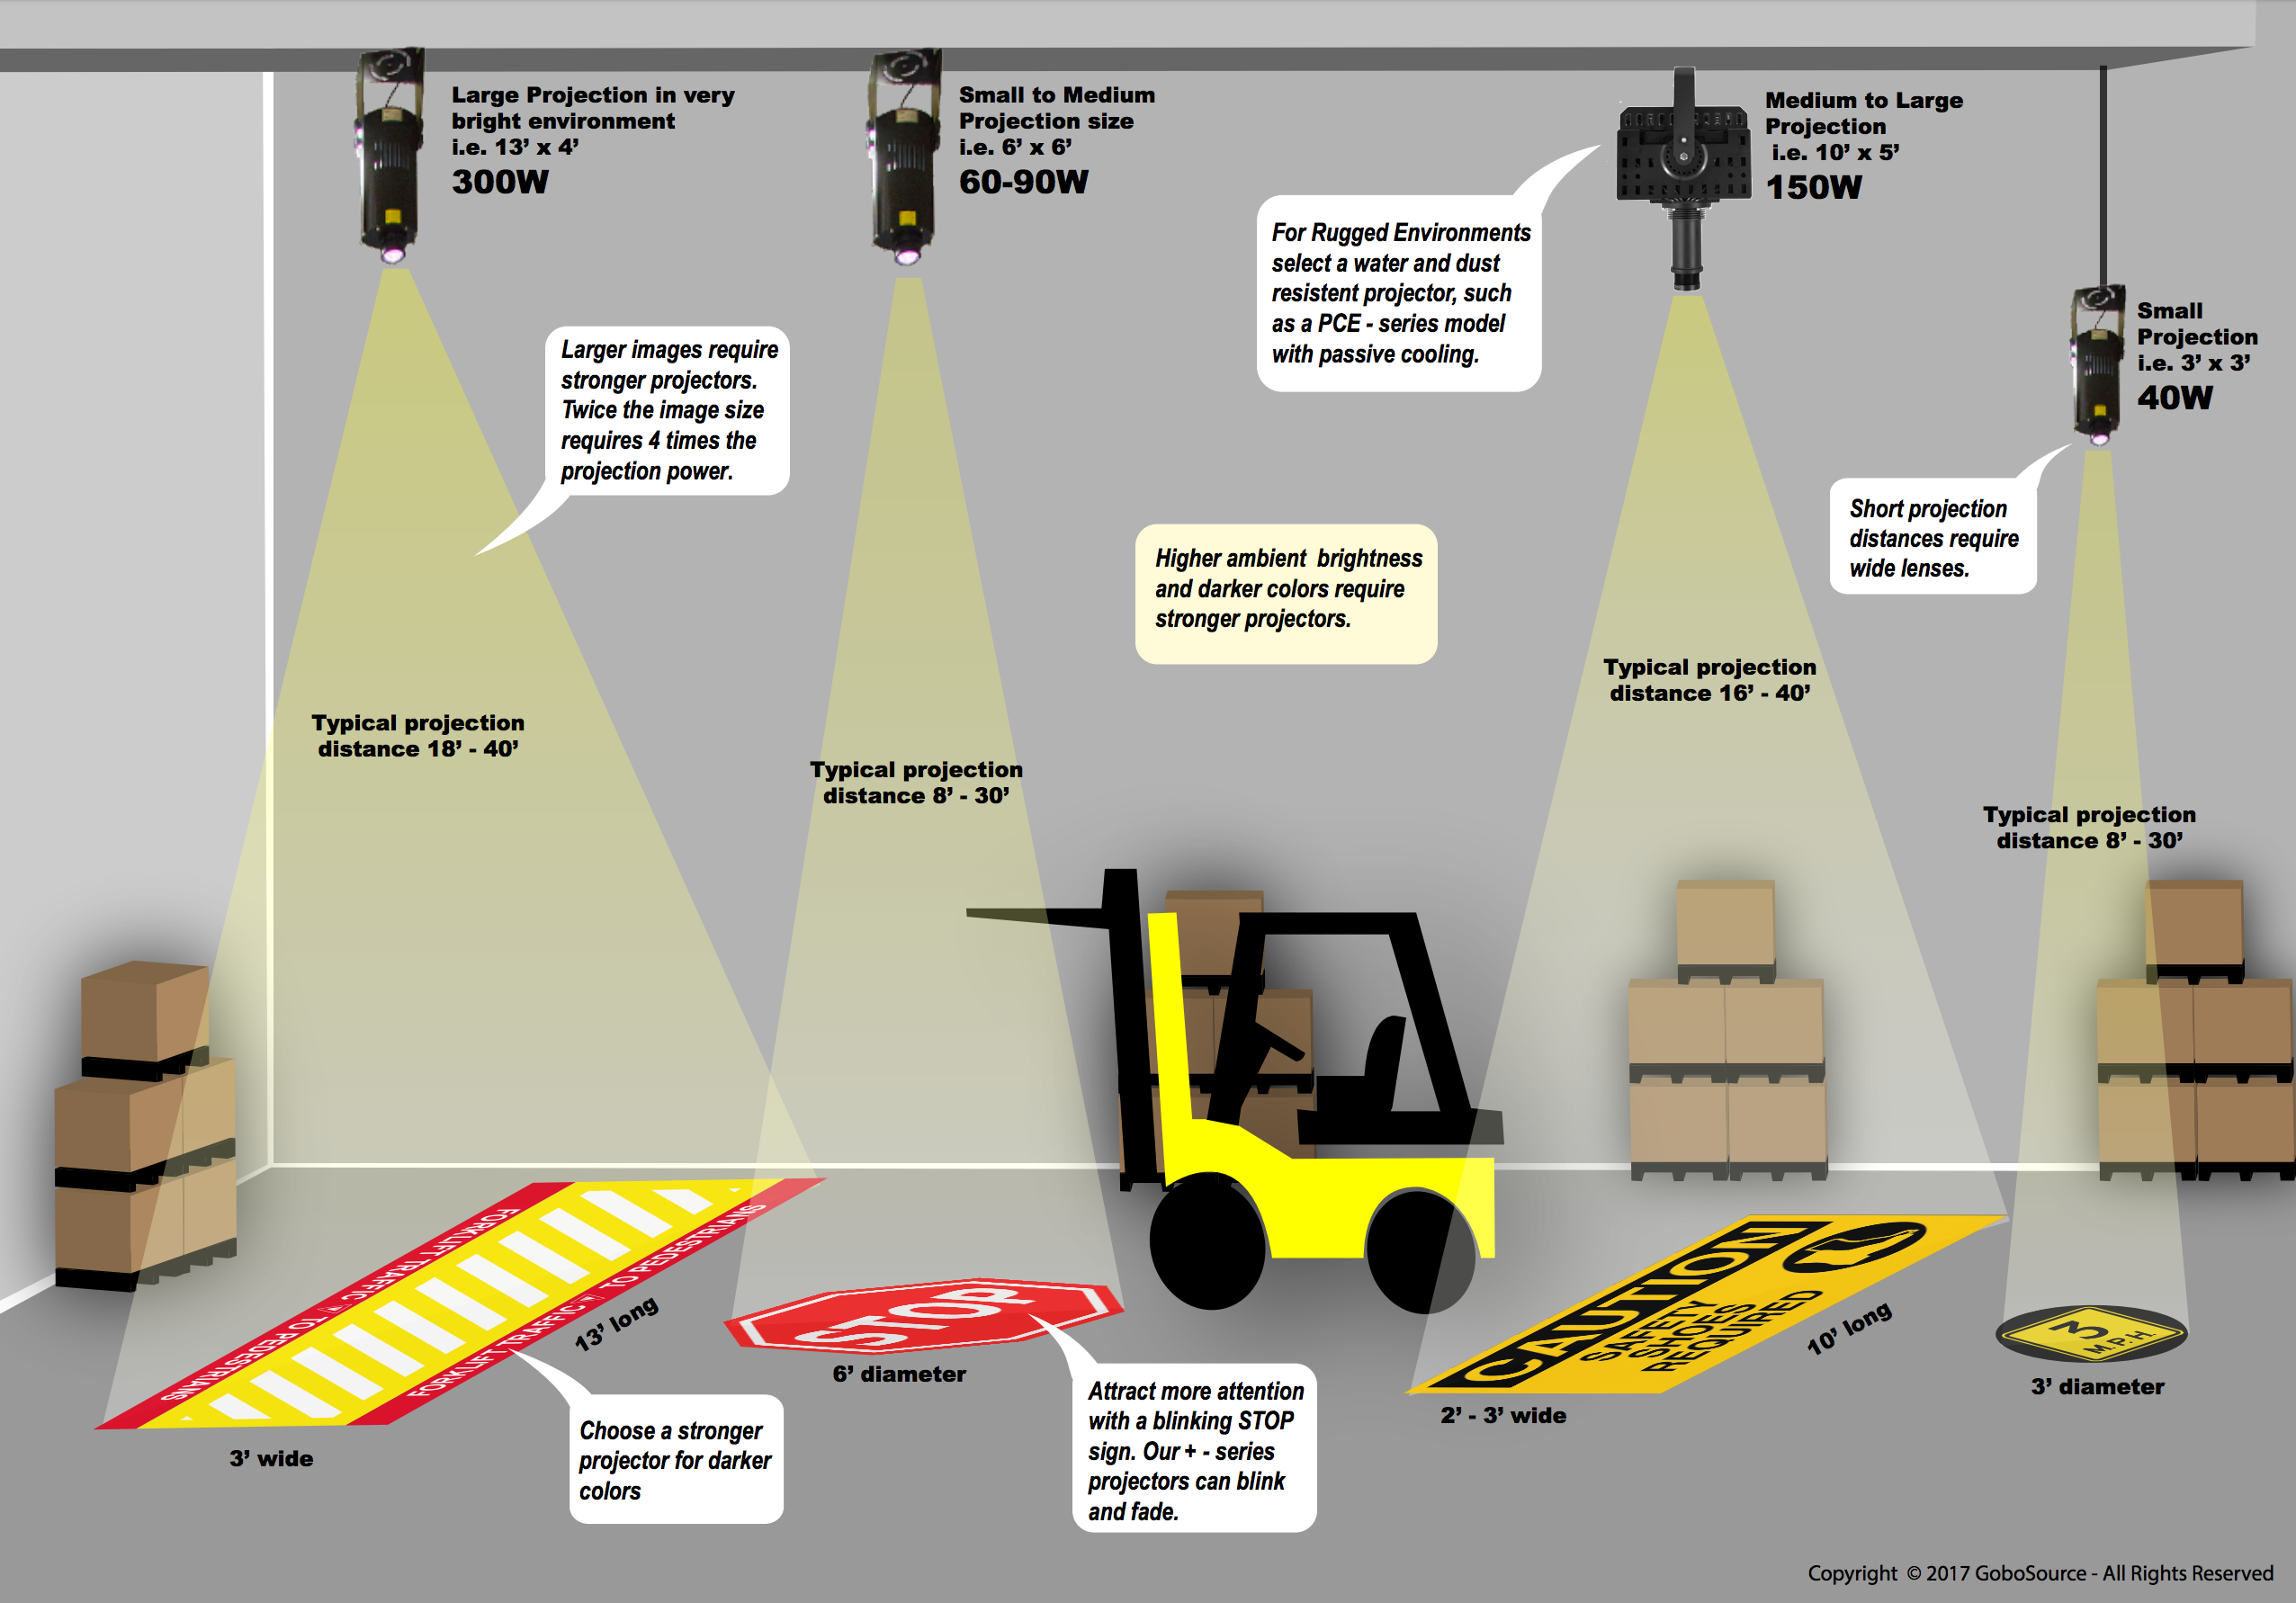 Projected Virtual Signage 101 For Industrial Spaces Gobosource Signage Outdoor Projector Industrial Safety